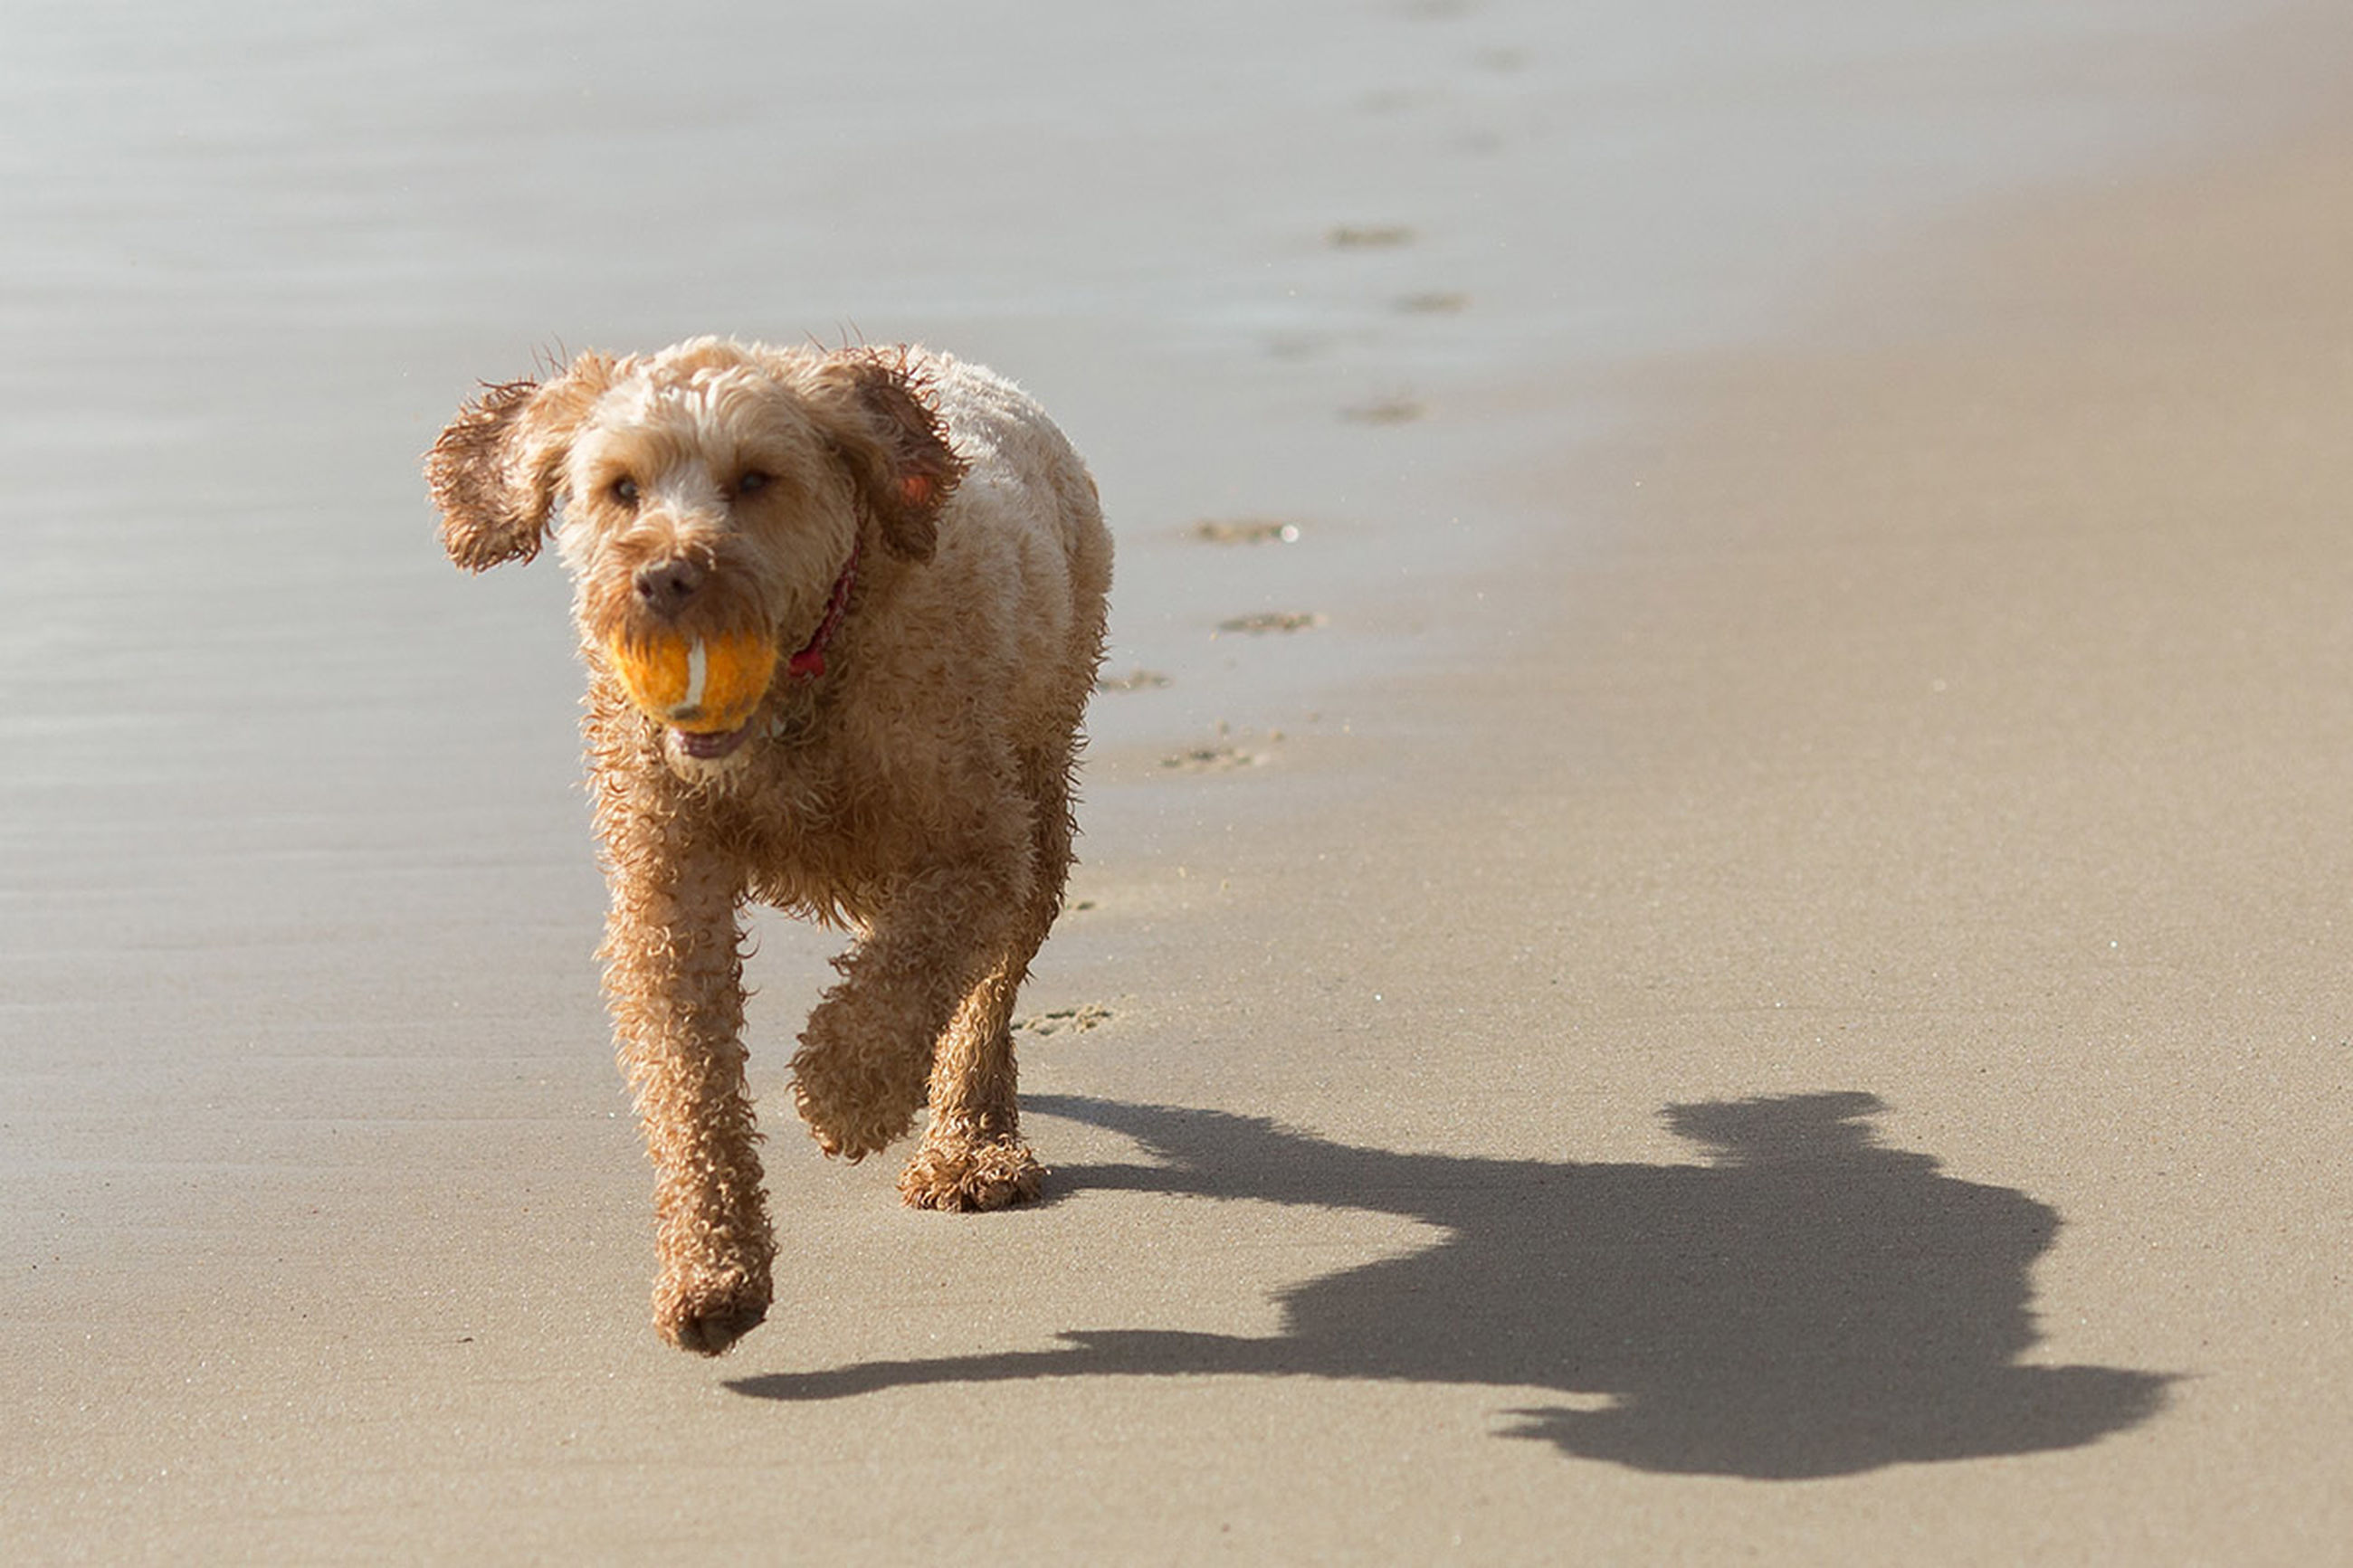 animal themes, one animal, dog, pets, domestic animals, mammal, beach, full length, sand, standing, walking, looking away, shore, outdoors, day, high angle view, nature, water, no people, portrait